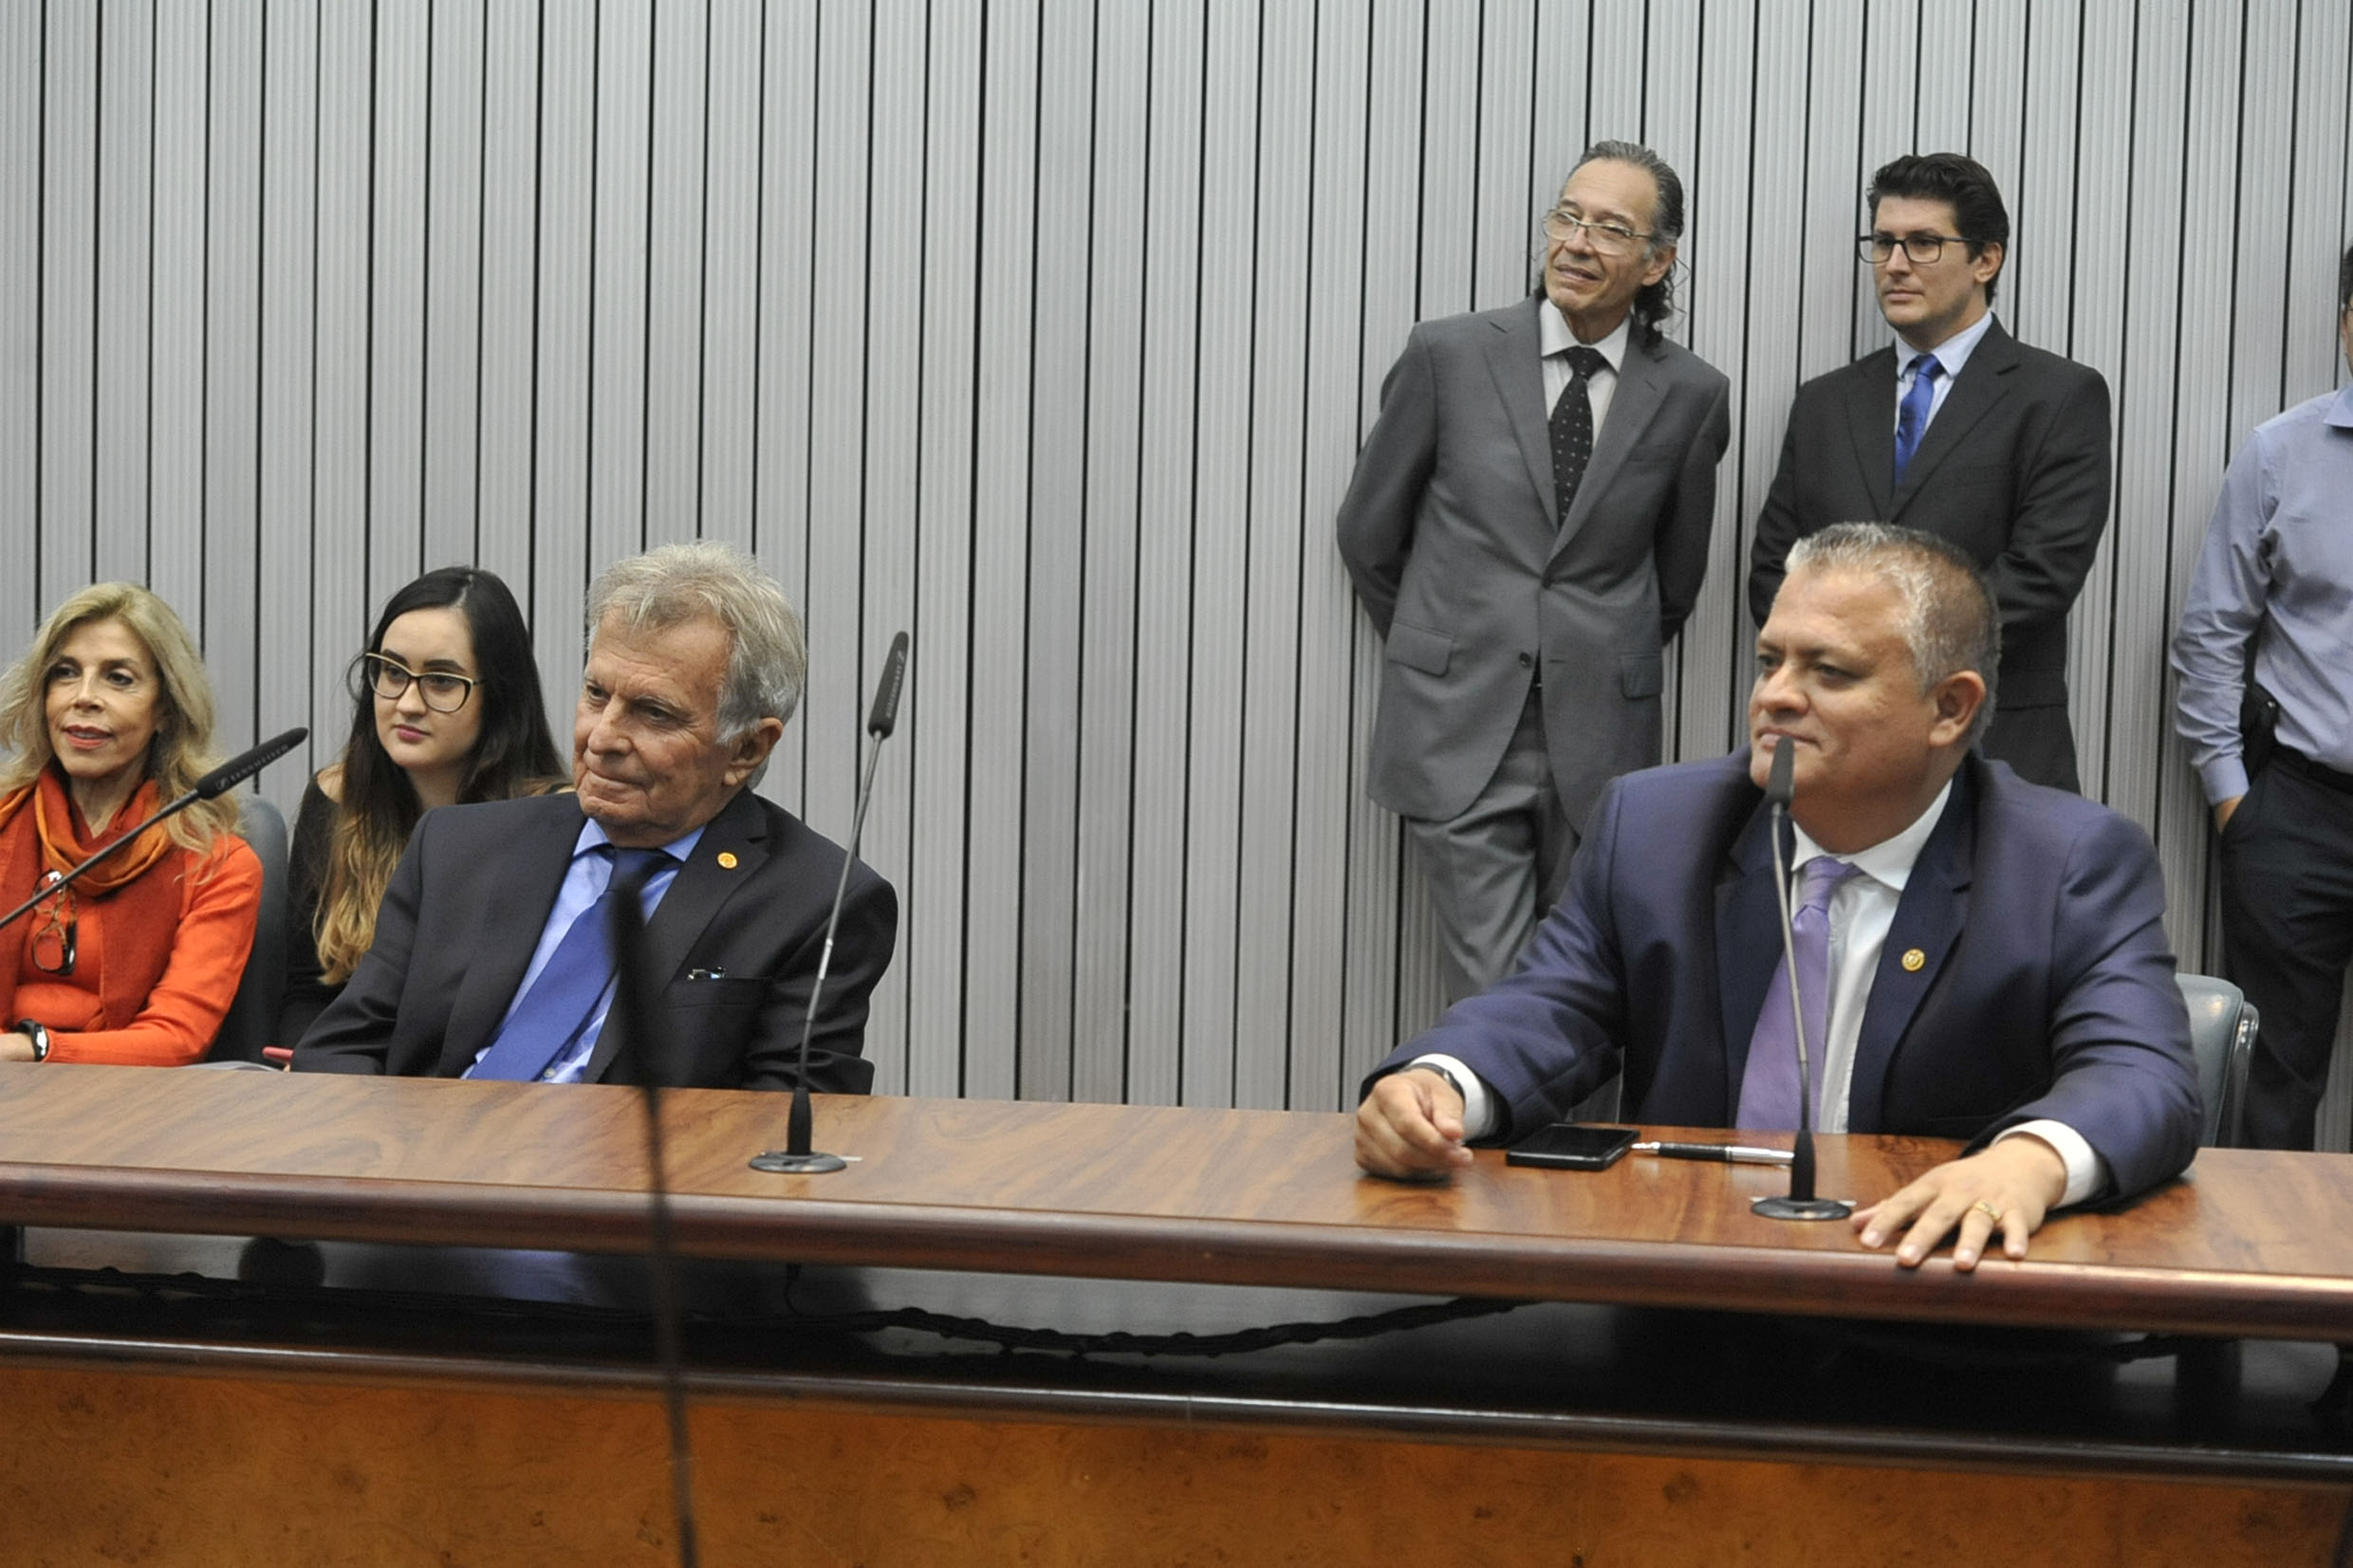 Parlamentares presentes<a style='float:right' href='https://www3.al.sp.gov.br/repositorio/noticia/N-04-2019/fg232606.jpg' target=_blank><img src='/_img/material-file-download-white.png' width='14px' alt='Clique para baixar a imagem'></a>